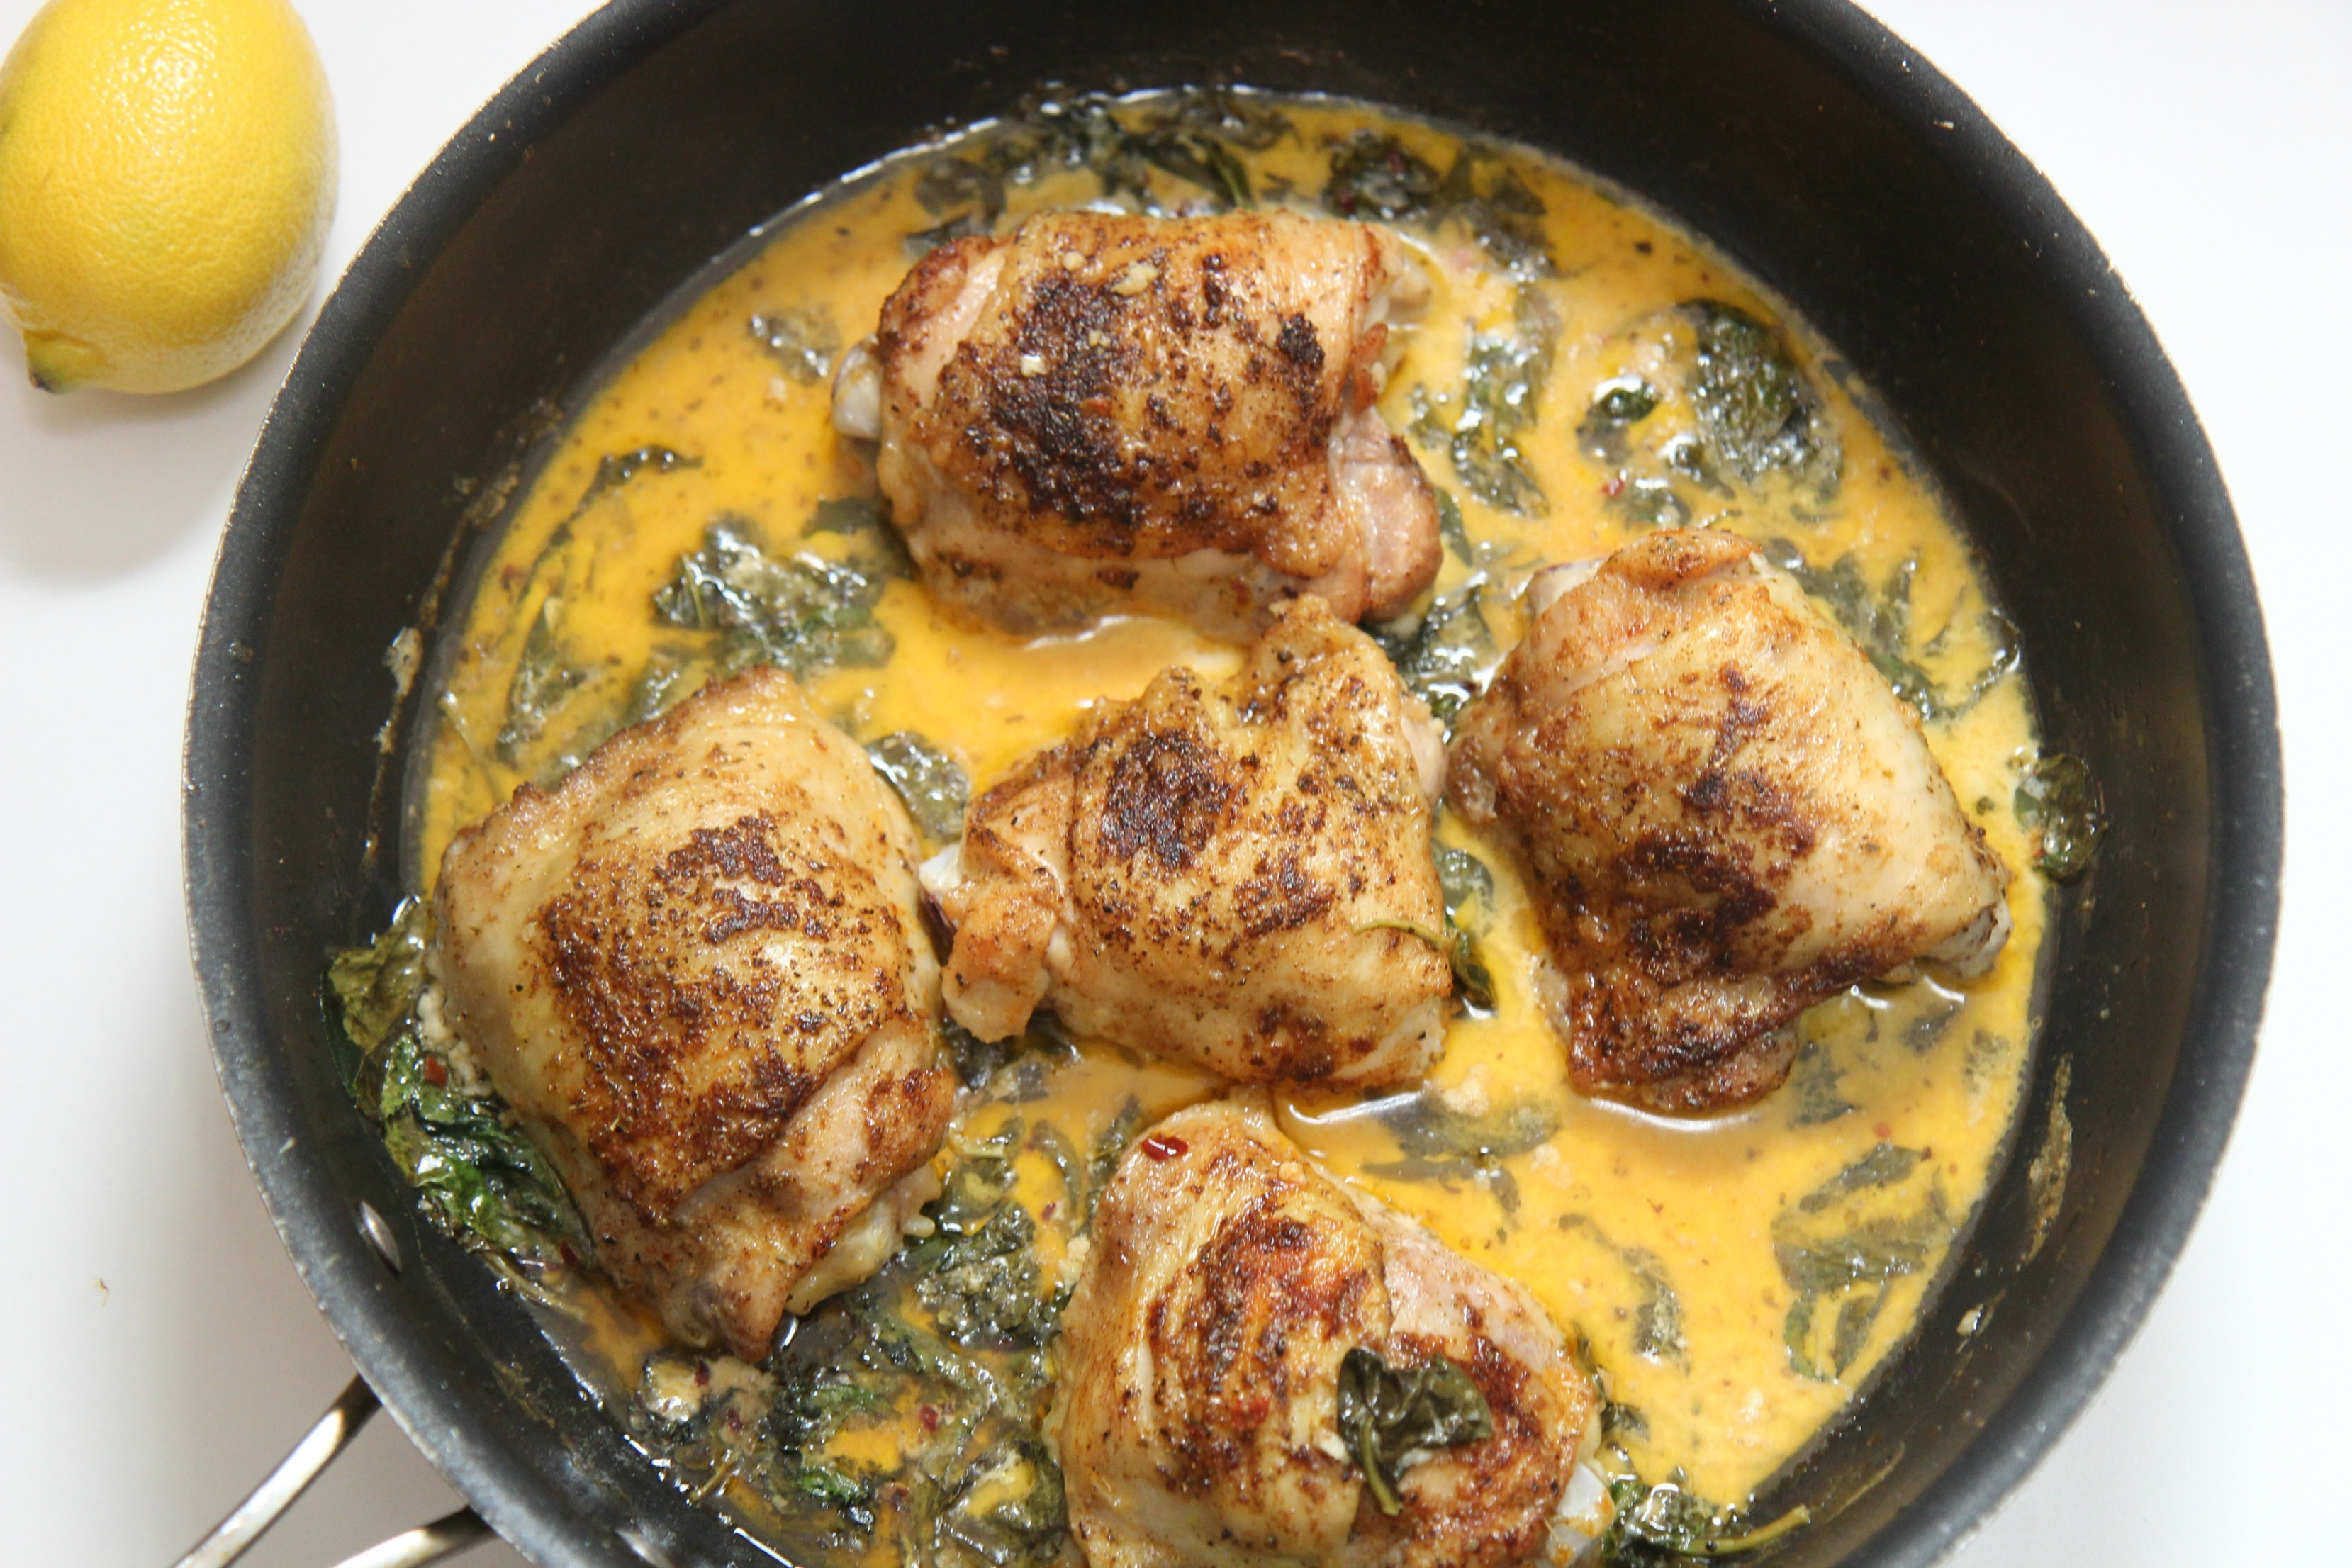 Vegetable and citrus help make the chicken develop complex flavors.